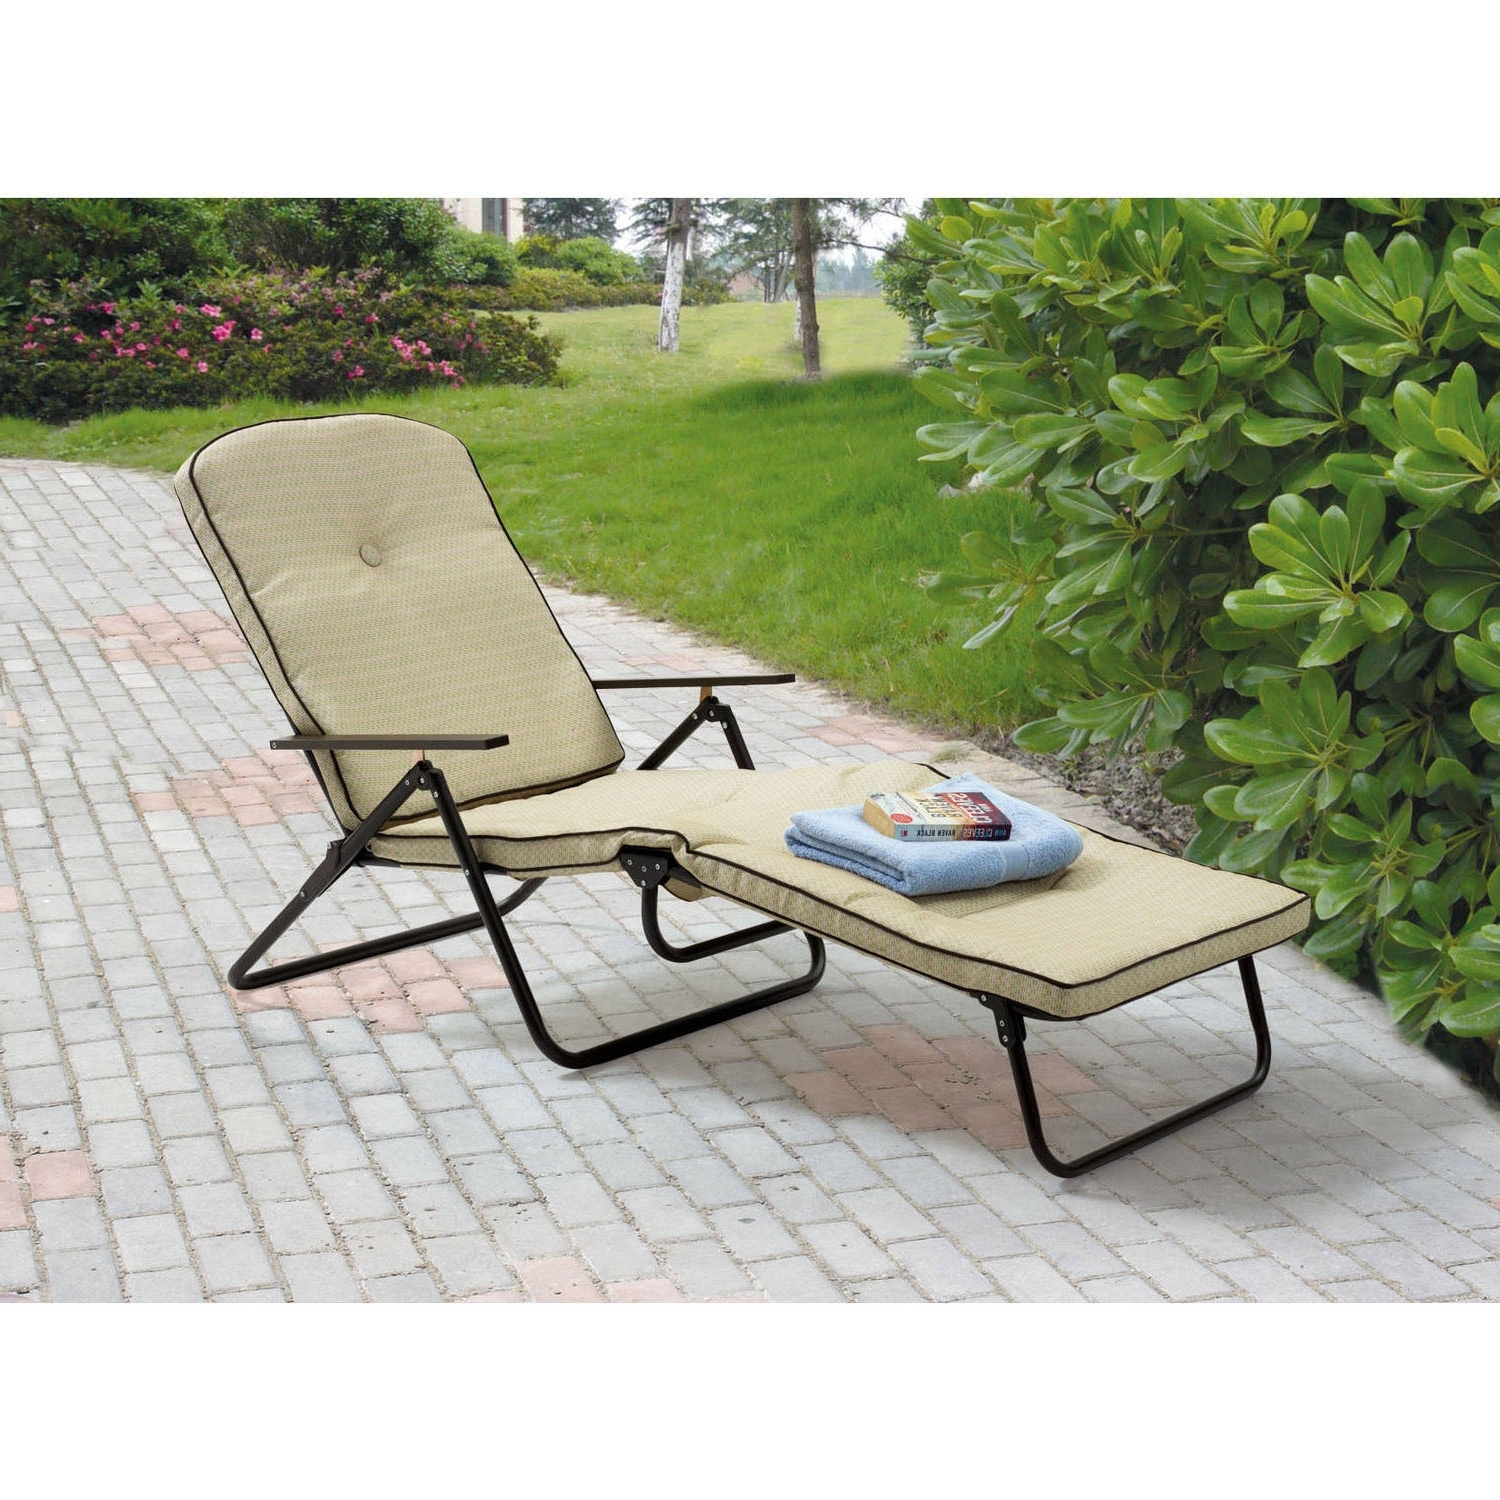 Most Current Foldable Chaise Lounge Outdoor Chairs Pertaining To Mainstays Sand Dune Outdoor Padded Folding Chaise Lounge, Tan (View 7 of 15)